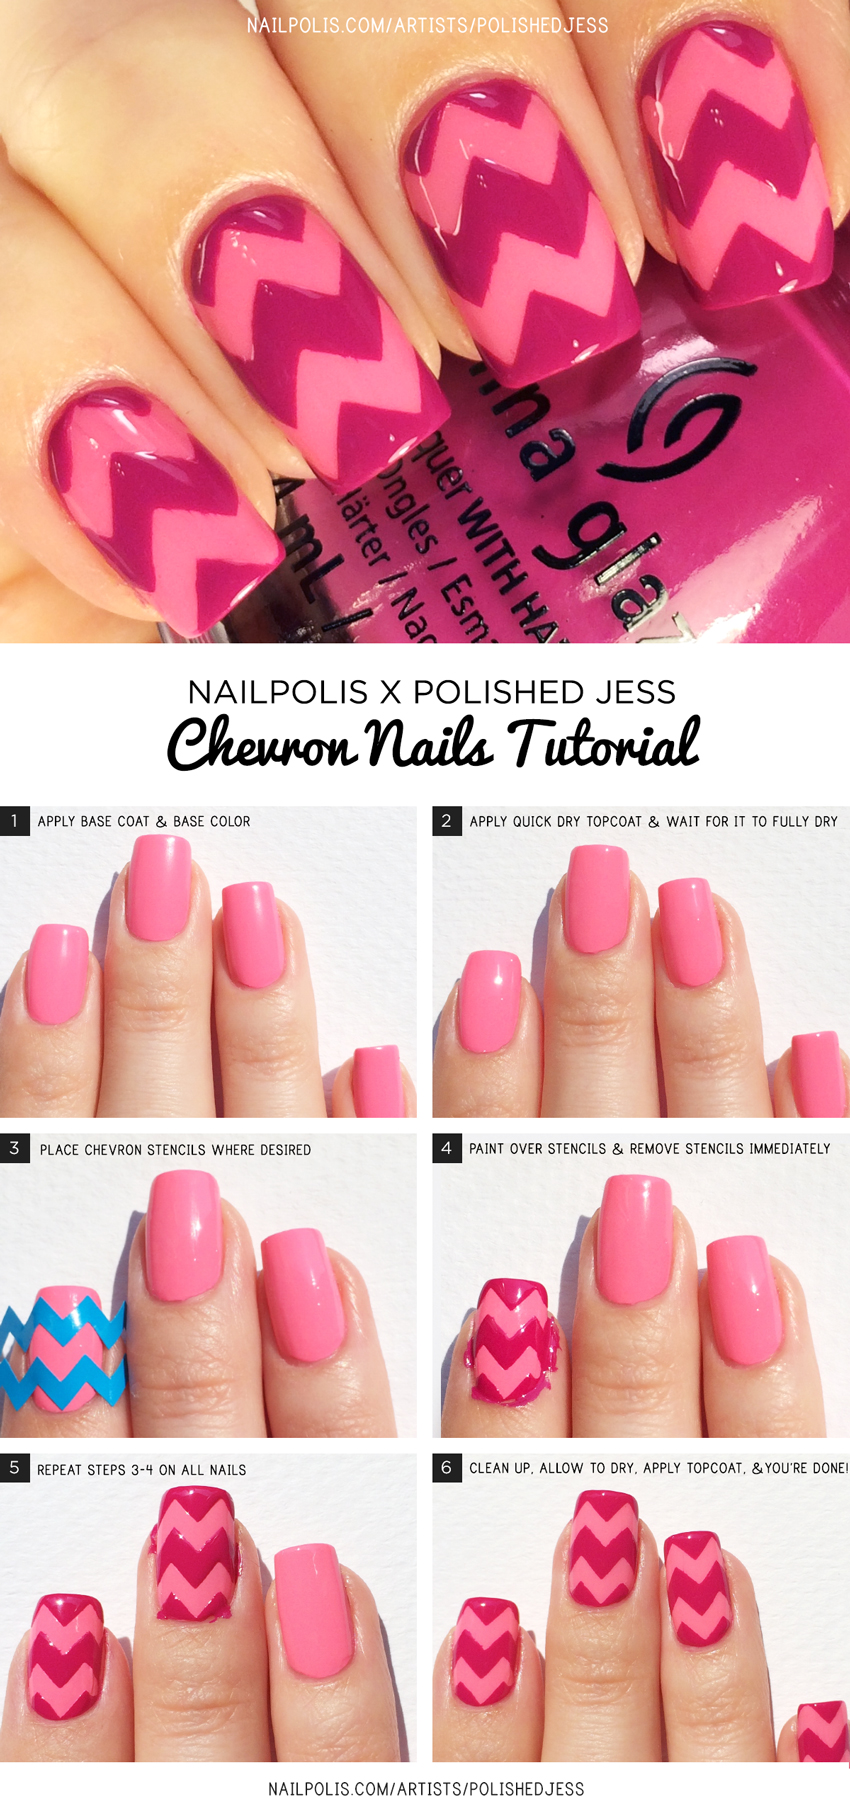 Chevron-Nails-Tutorial---Polished-Jess-&-Nailpolis